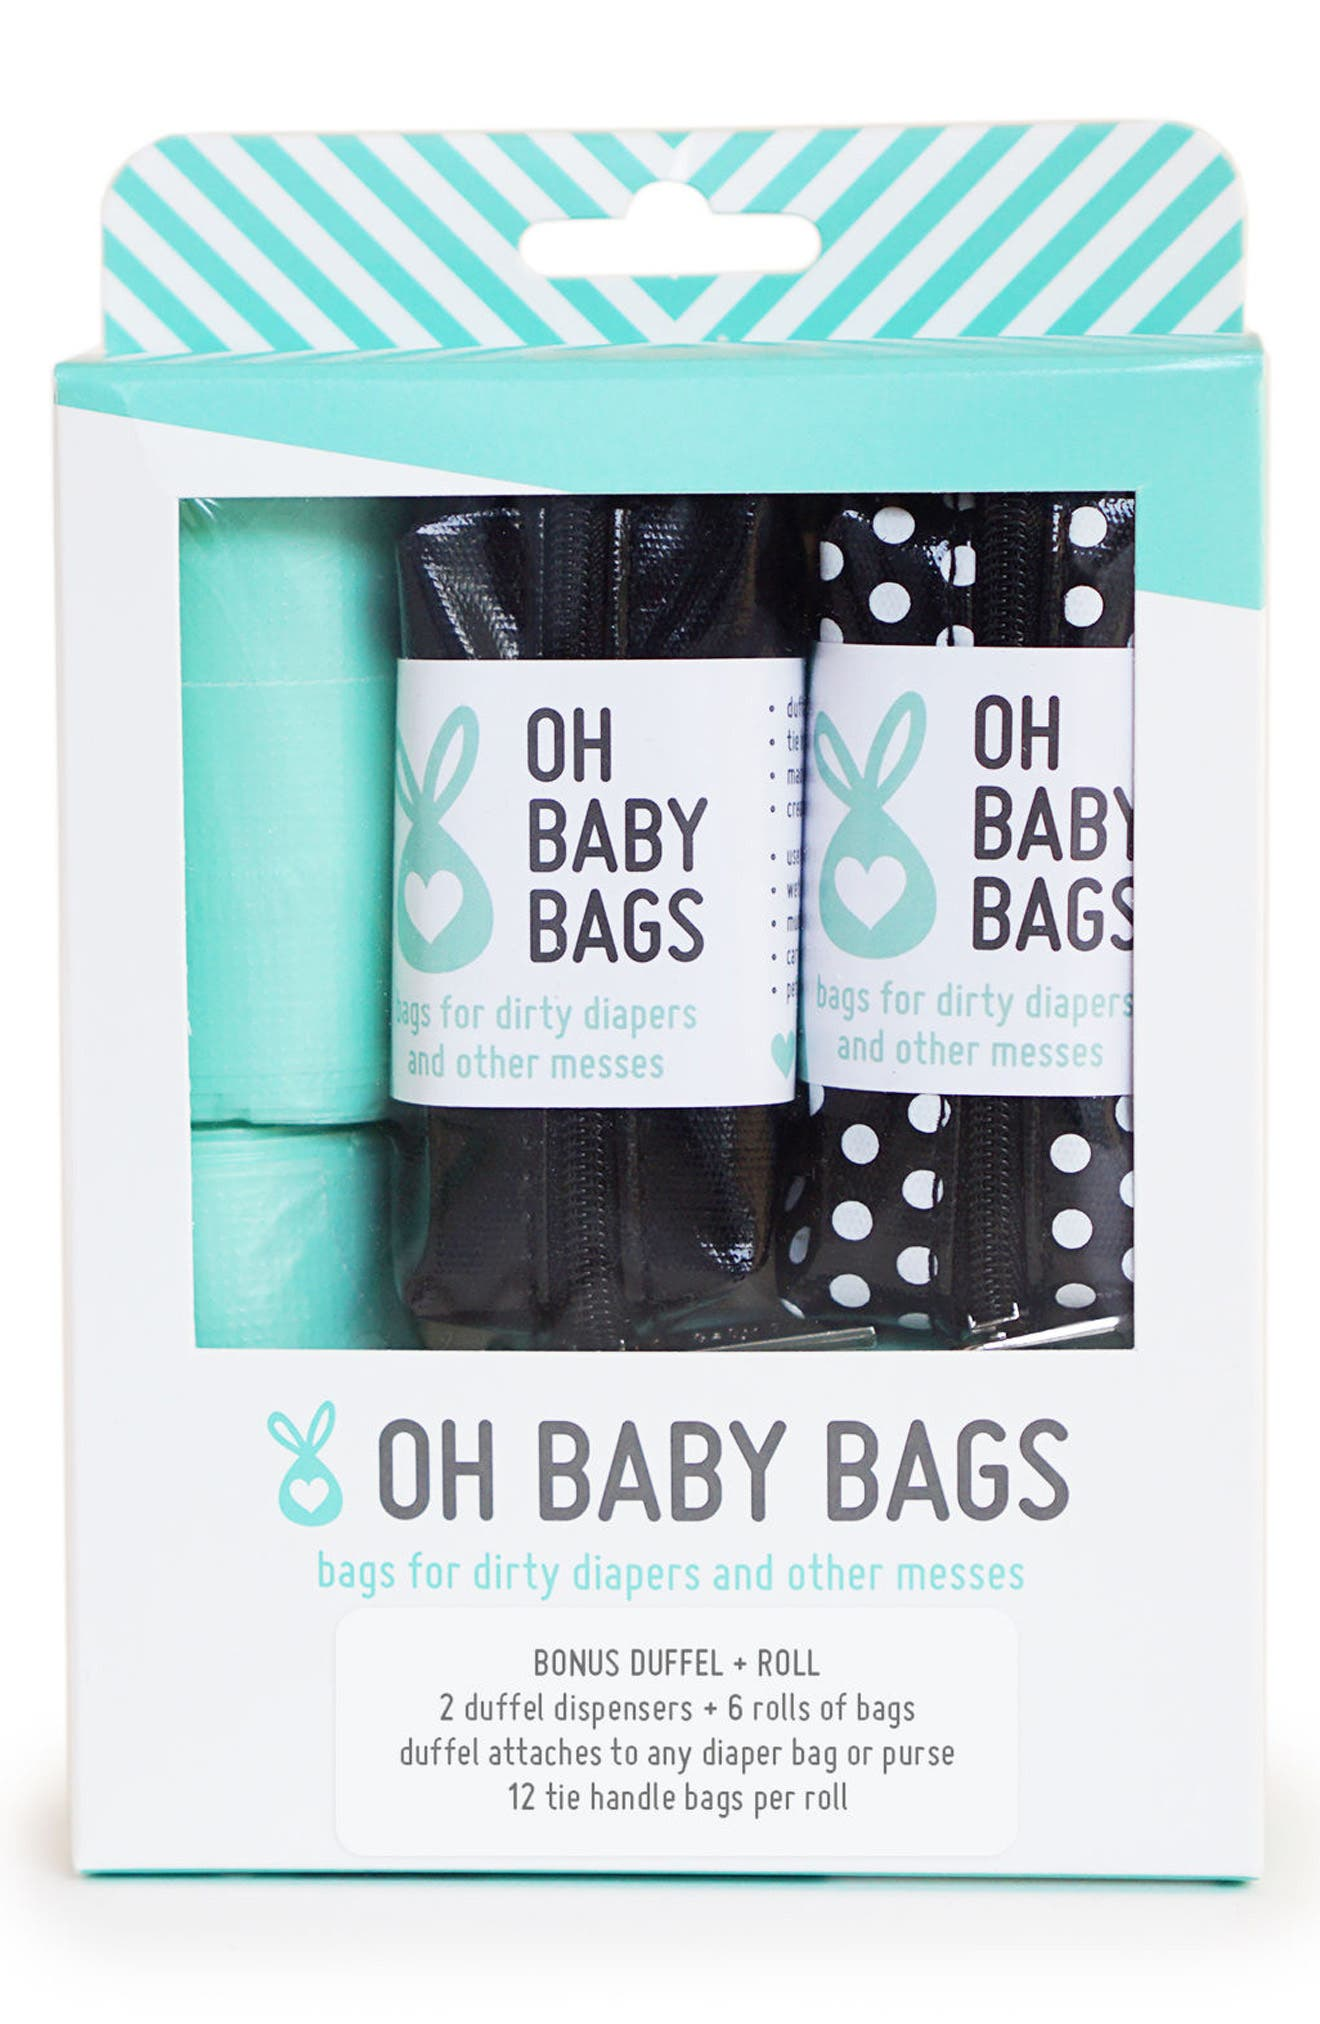 Alternate Image 1 Selected - Oh Baby Bags Portable Clip-On Dispenser & Bag Set